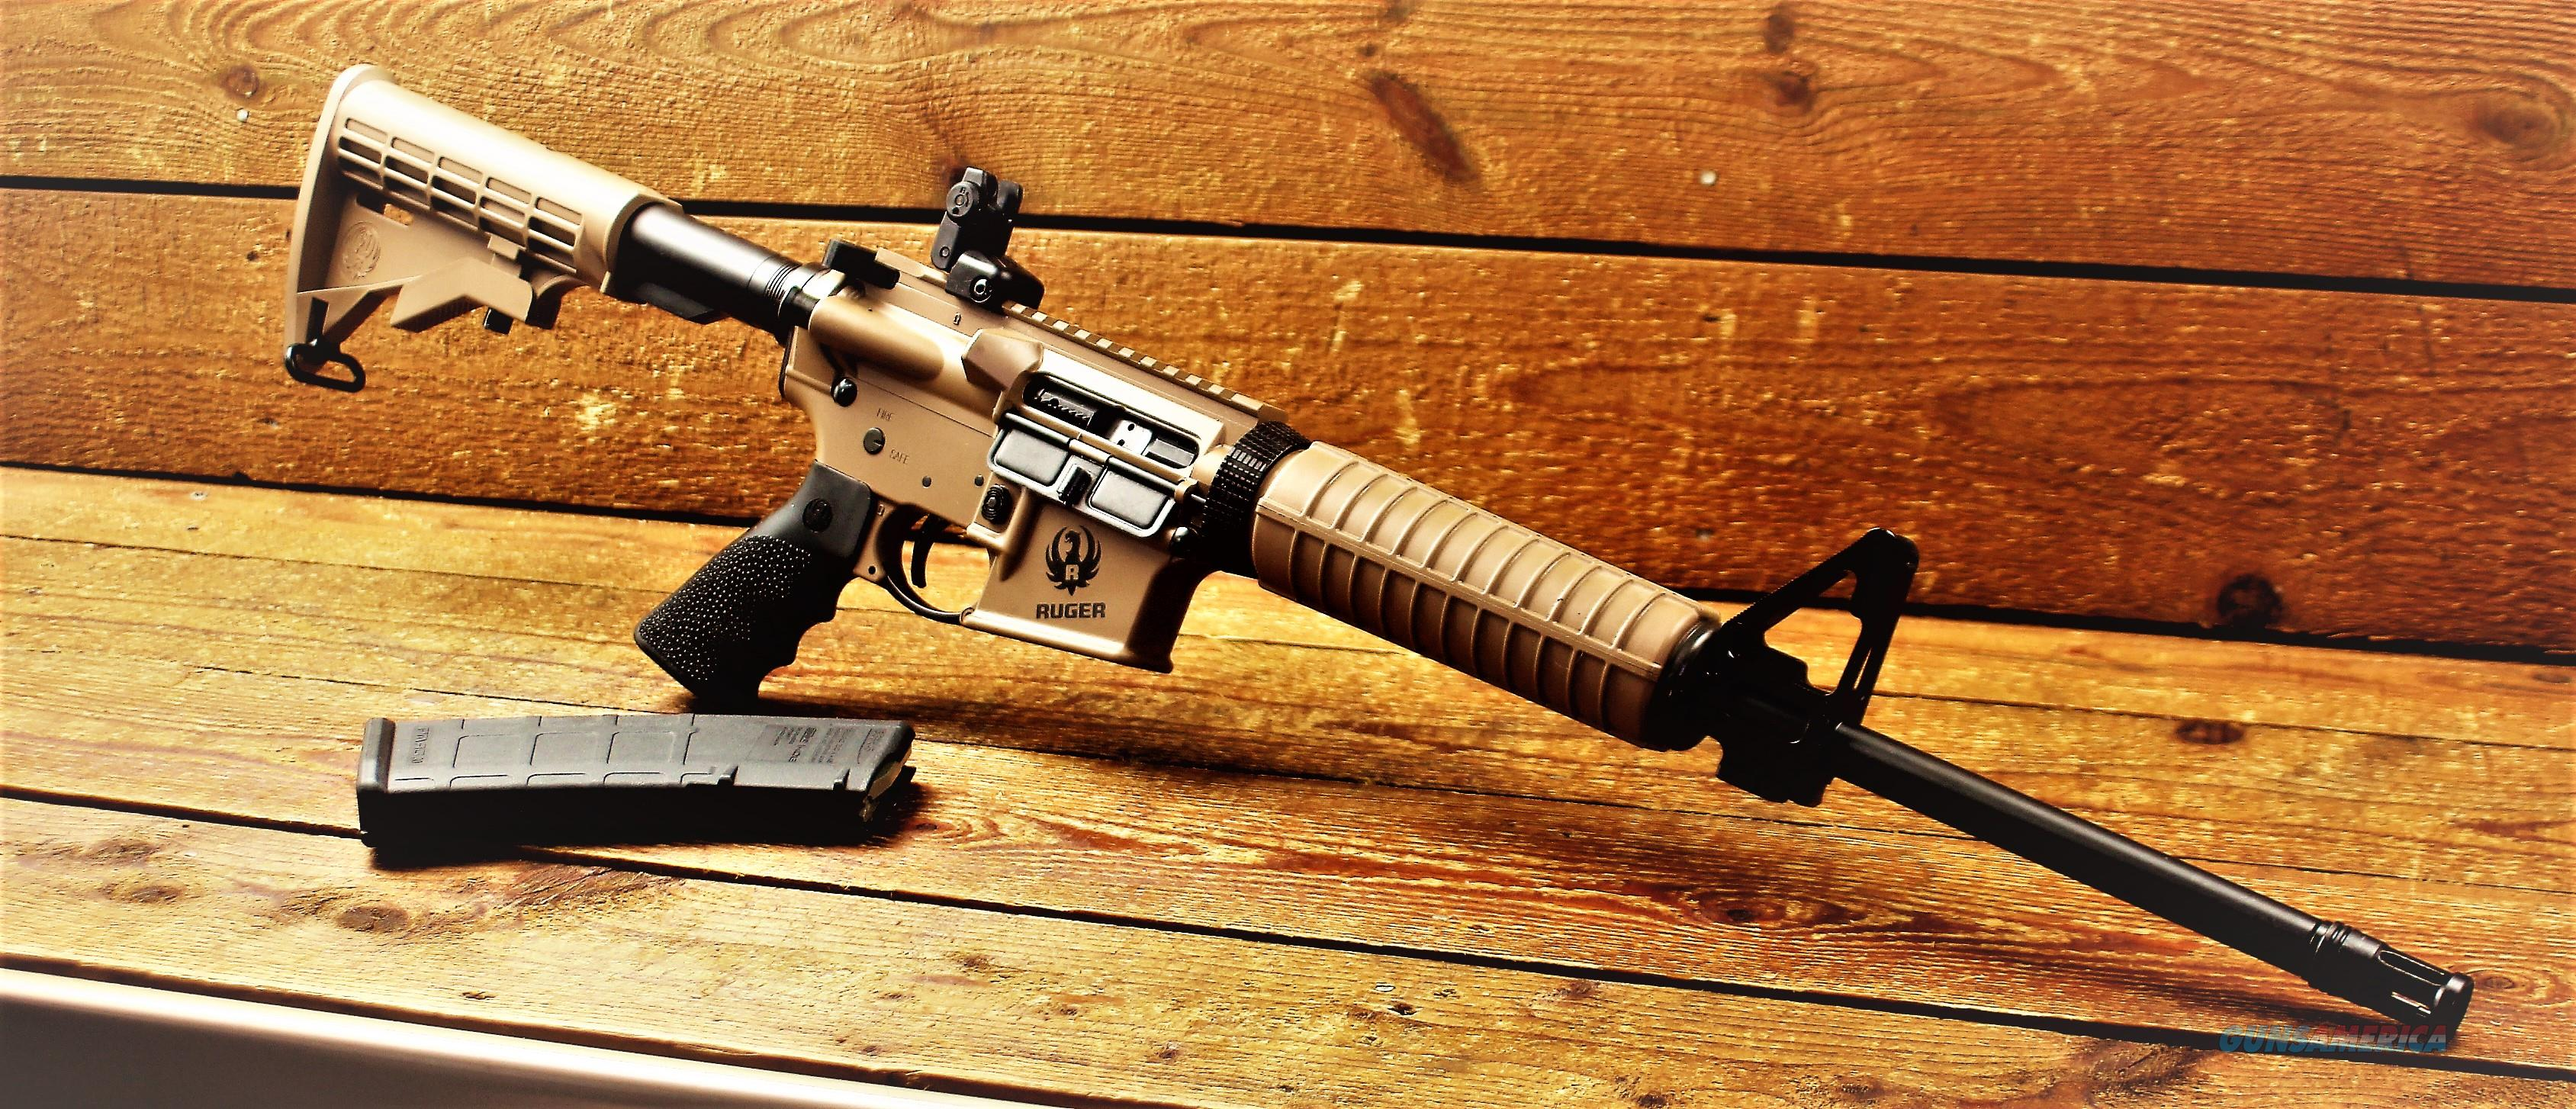 Easy Pay $44 Layaway  Ruger 8503 AR-556 Rifle ar-15 ar15 5.56mm 16in 30rd Exclusive FDE Cerakote Components   Guns > Rifles > Ruger Rifles > SR Series